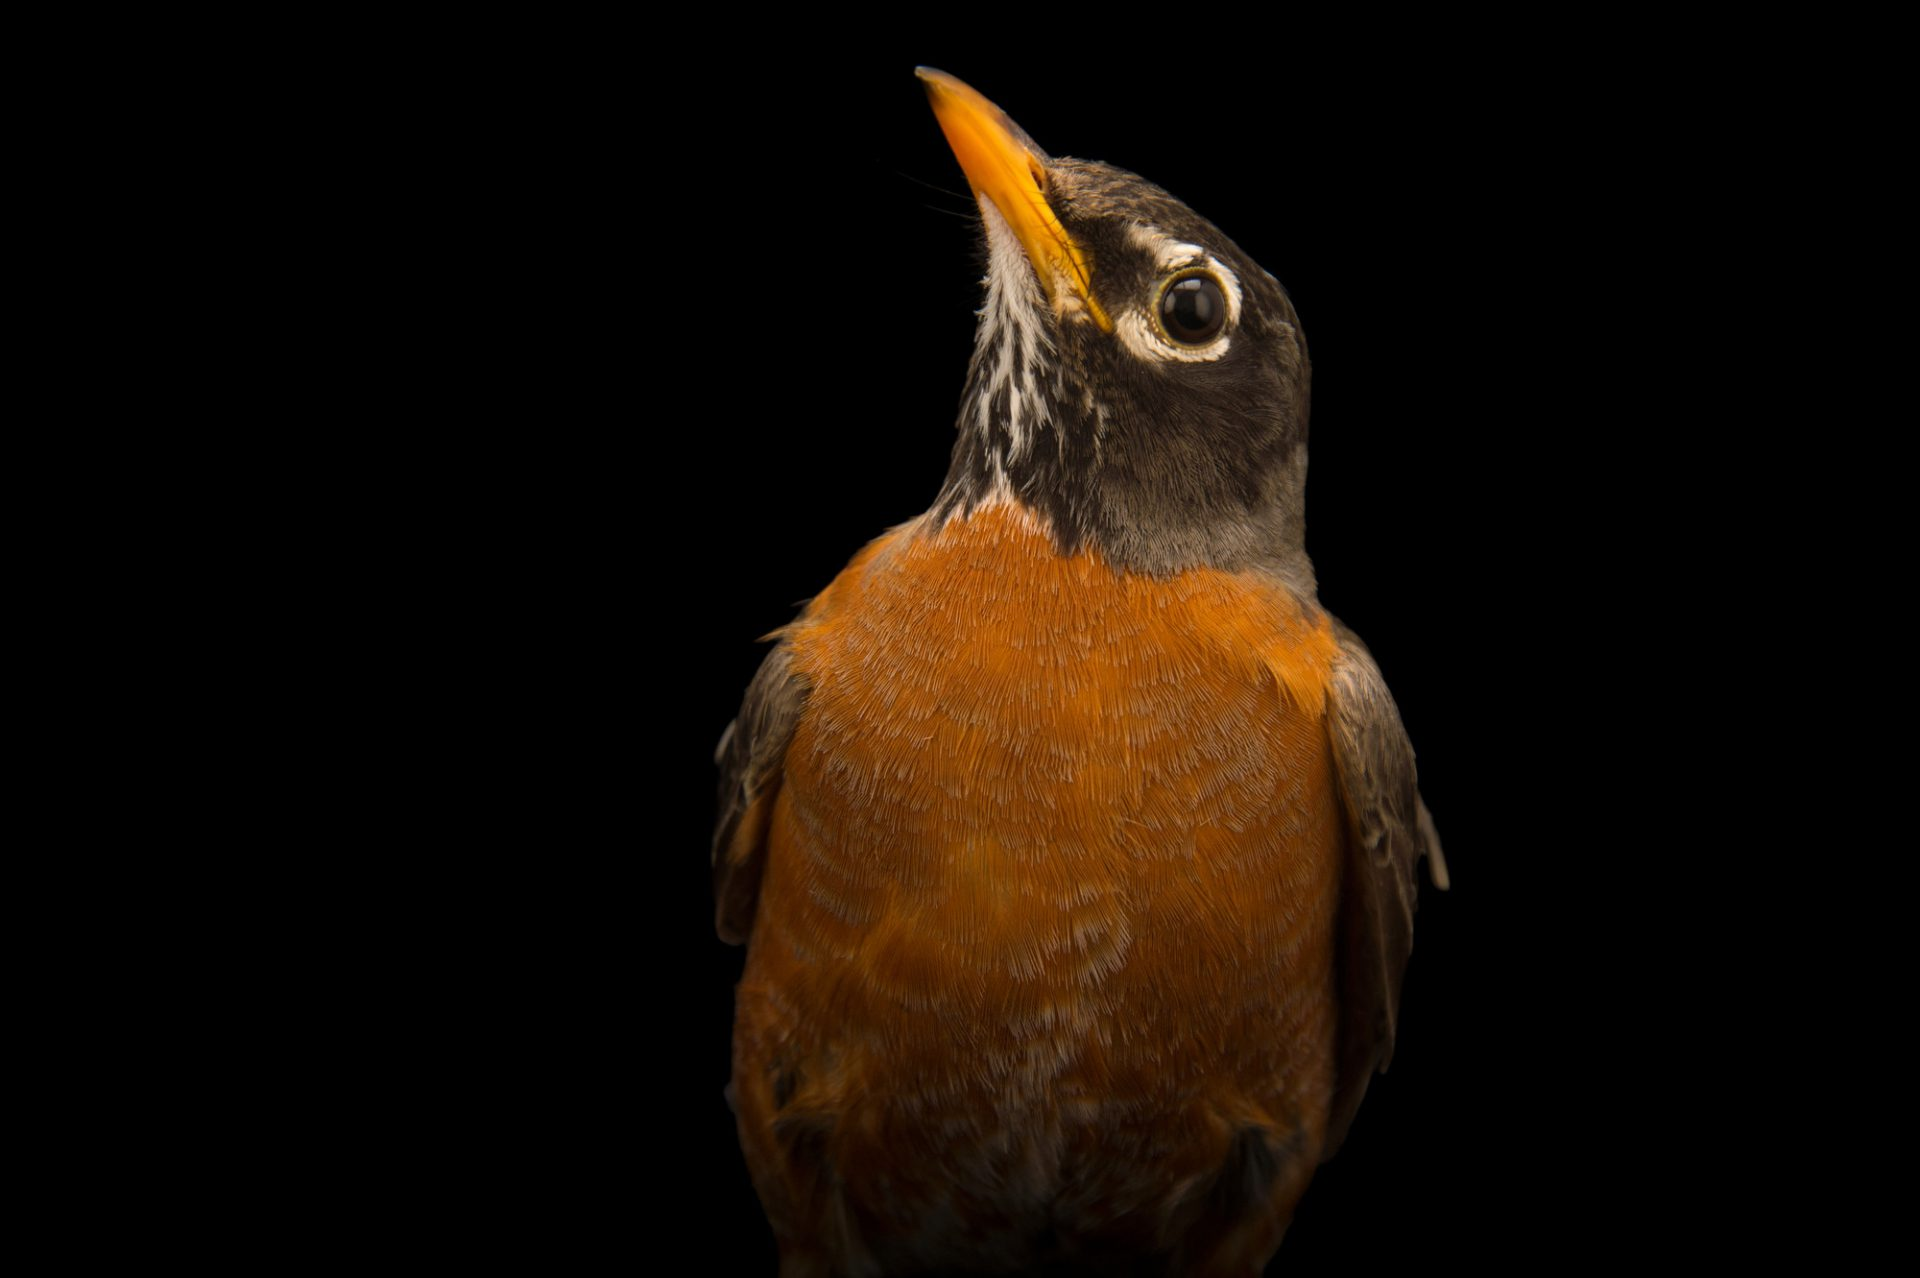 An American robin (Turdus migratorius propinquus) at the Wildlife Rehabilitation Center of Northern Utah.